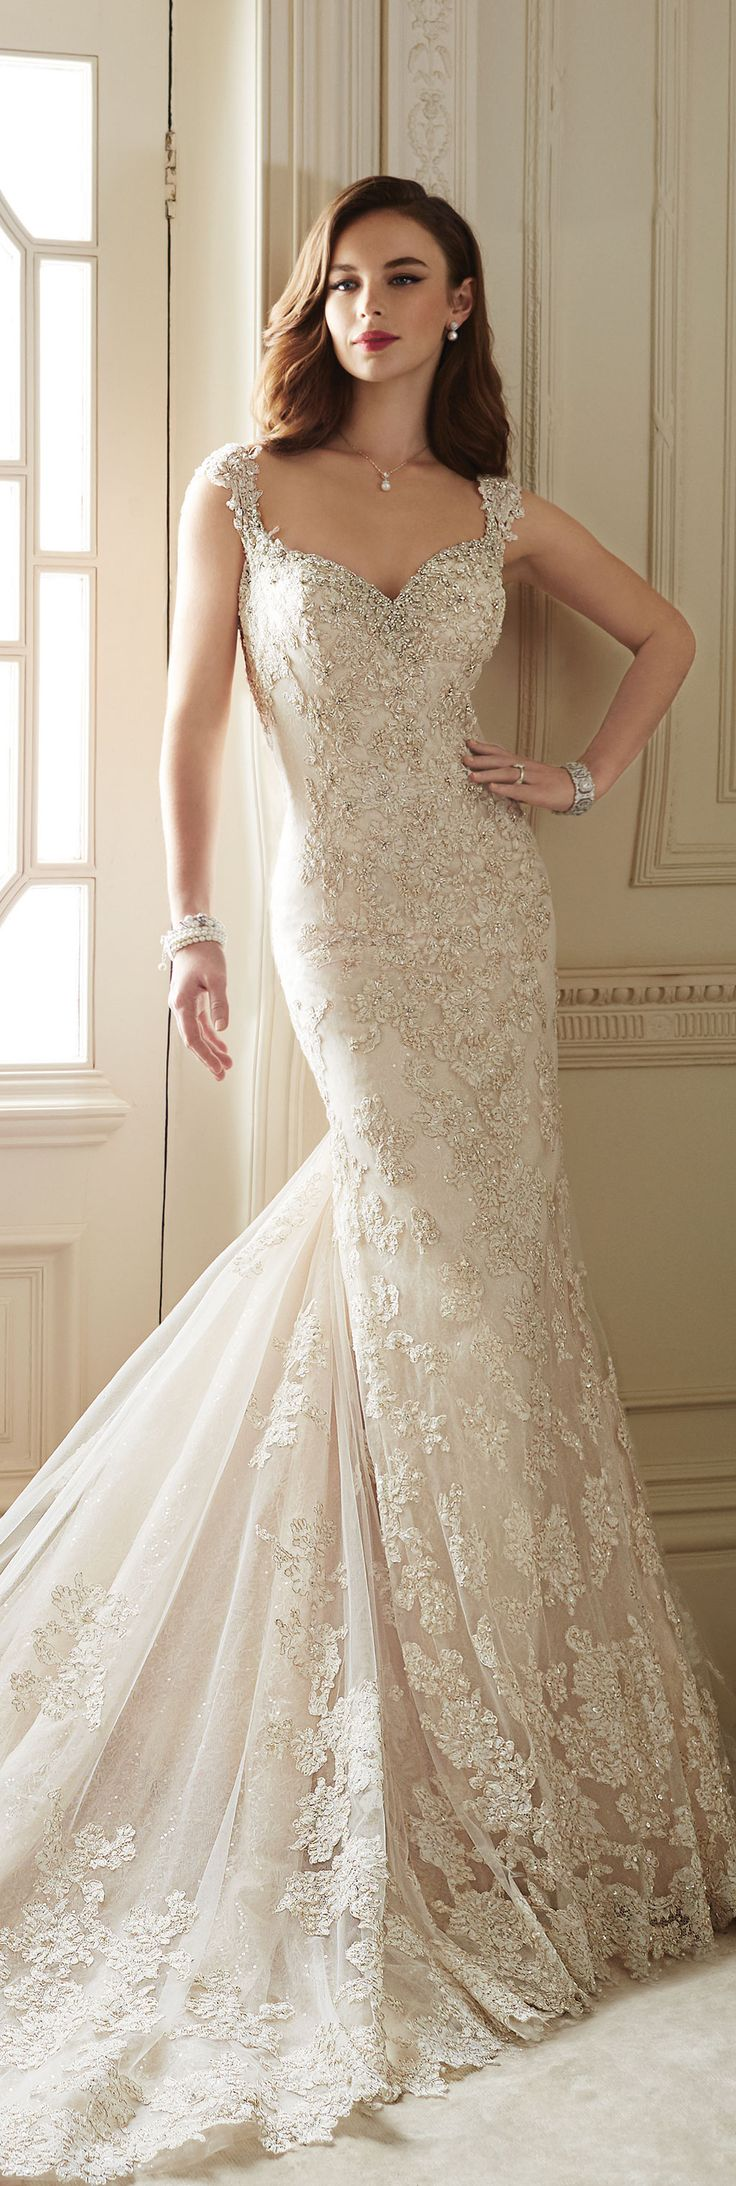 No lace wedding dress october 2018  best laaroussa images on Pinterest  Brides Groom attire and